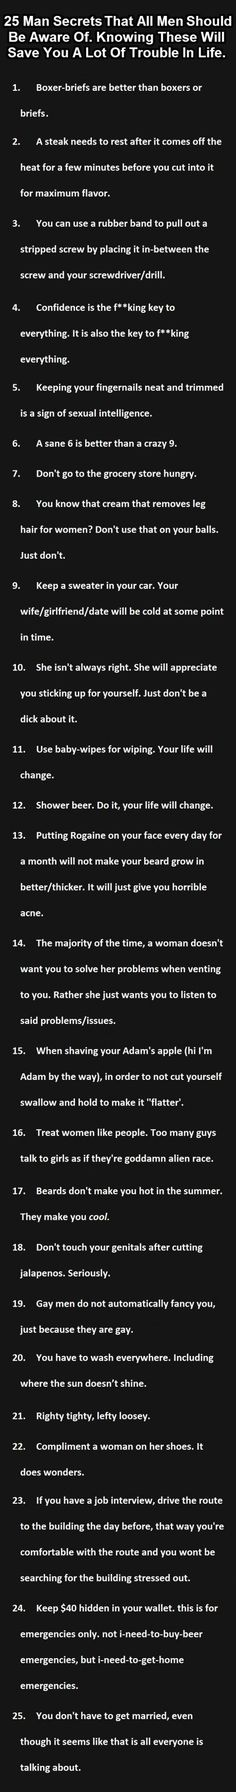 25 Man facts you should know, but tees aren't bad lady facts lol